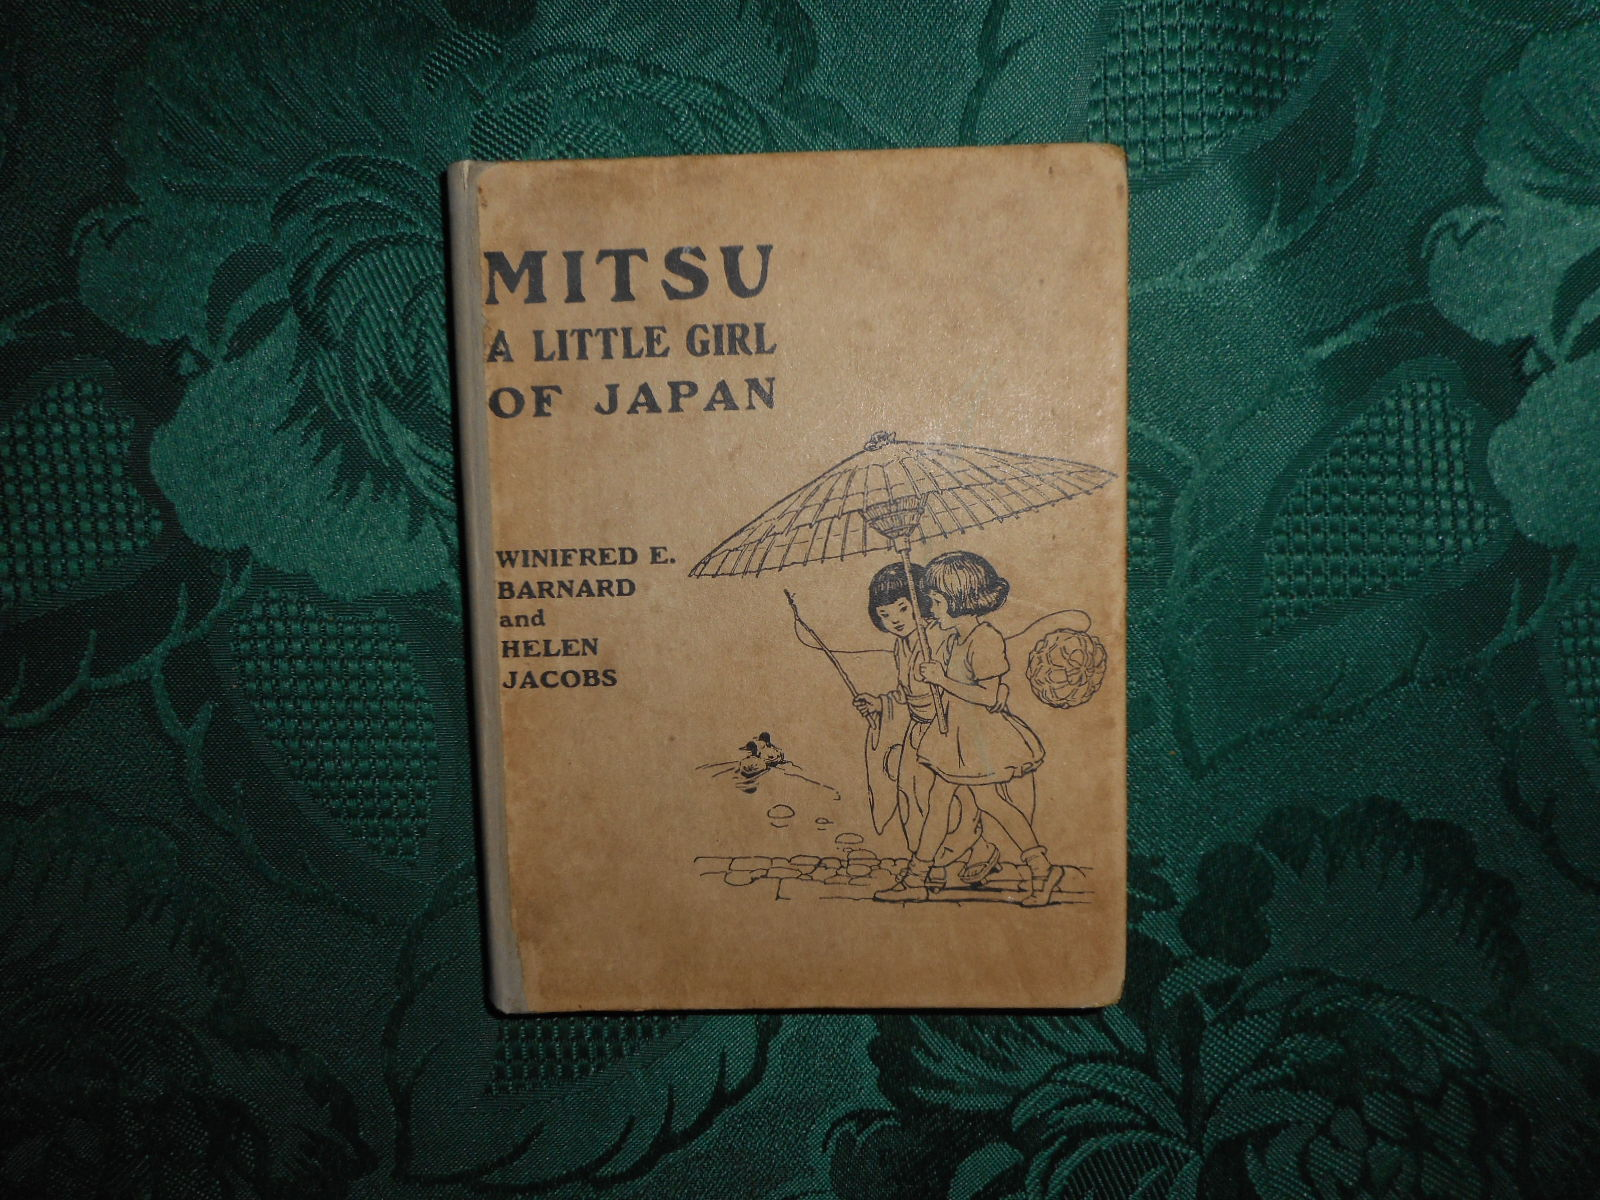 Mitsu. A Little Girl of Japan.